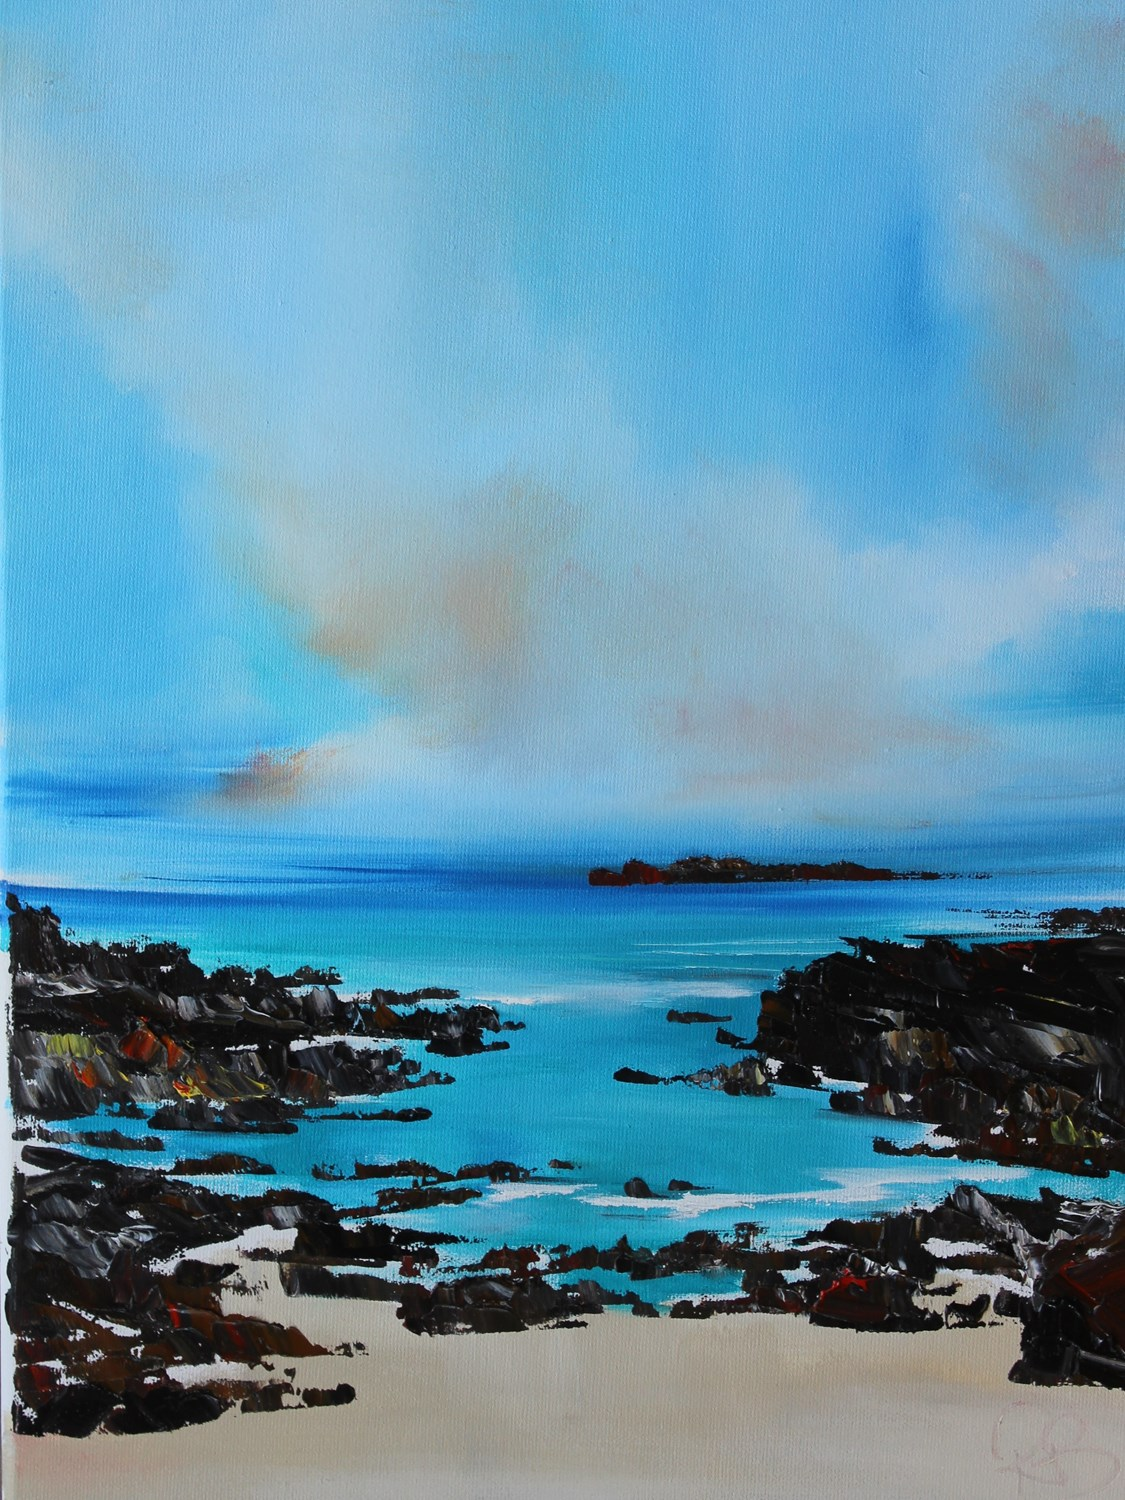 'Scattered Rocks ' by artist Rosanne Barr